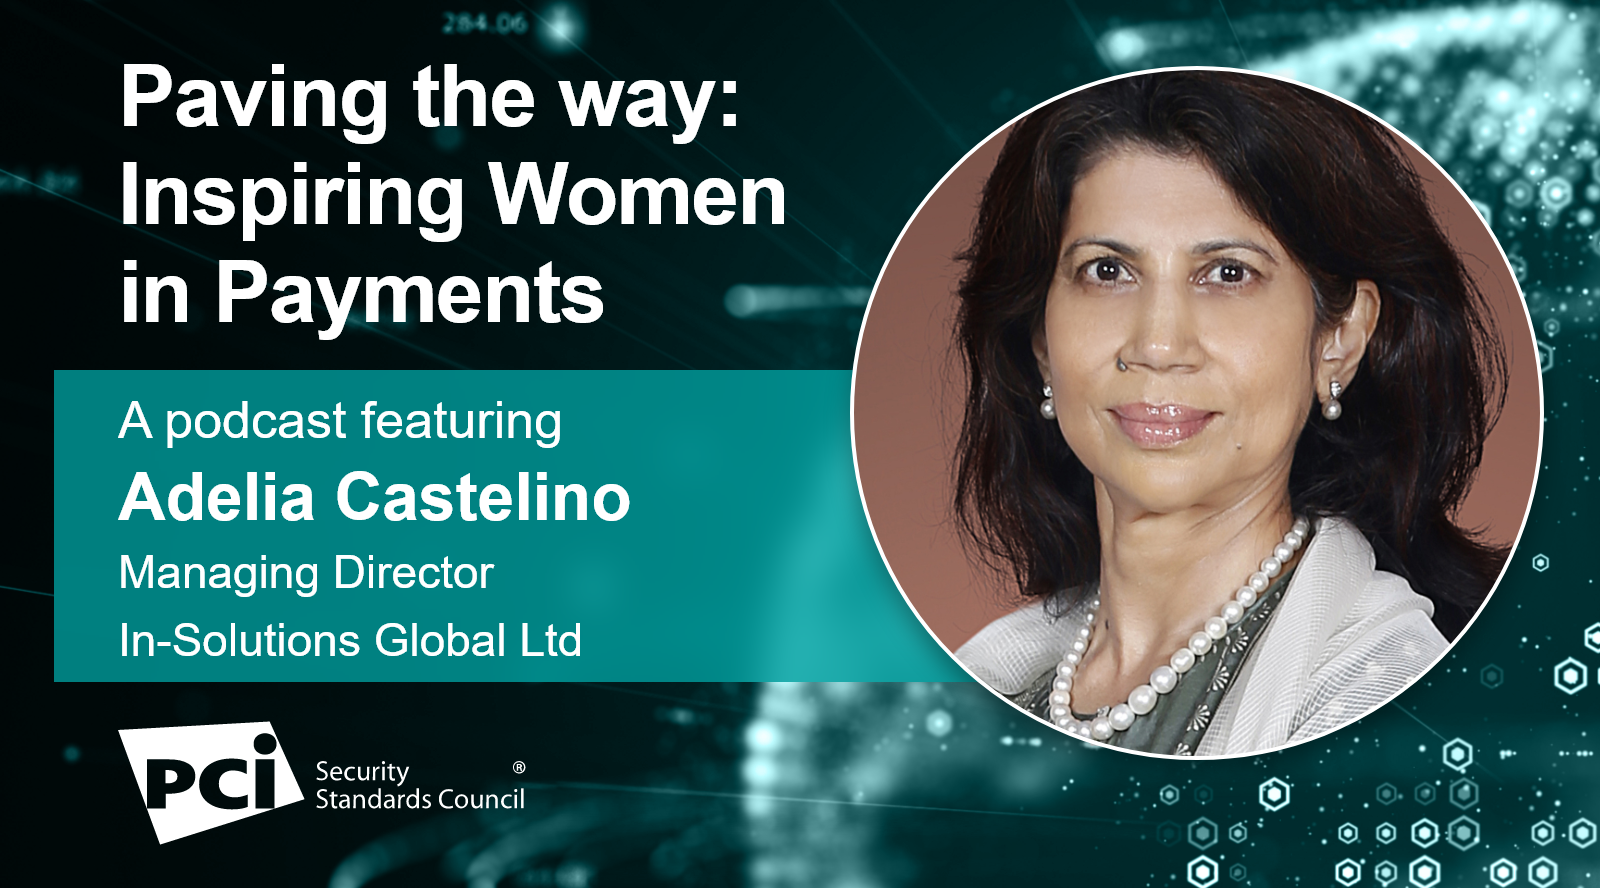 Paving the Way: Inspiring Women in Payments - A Podcast FeaturingAdelia Castelino